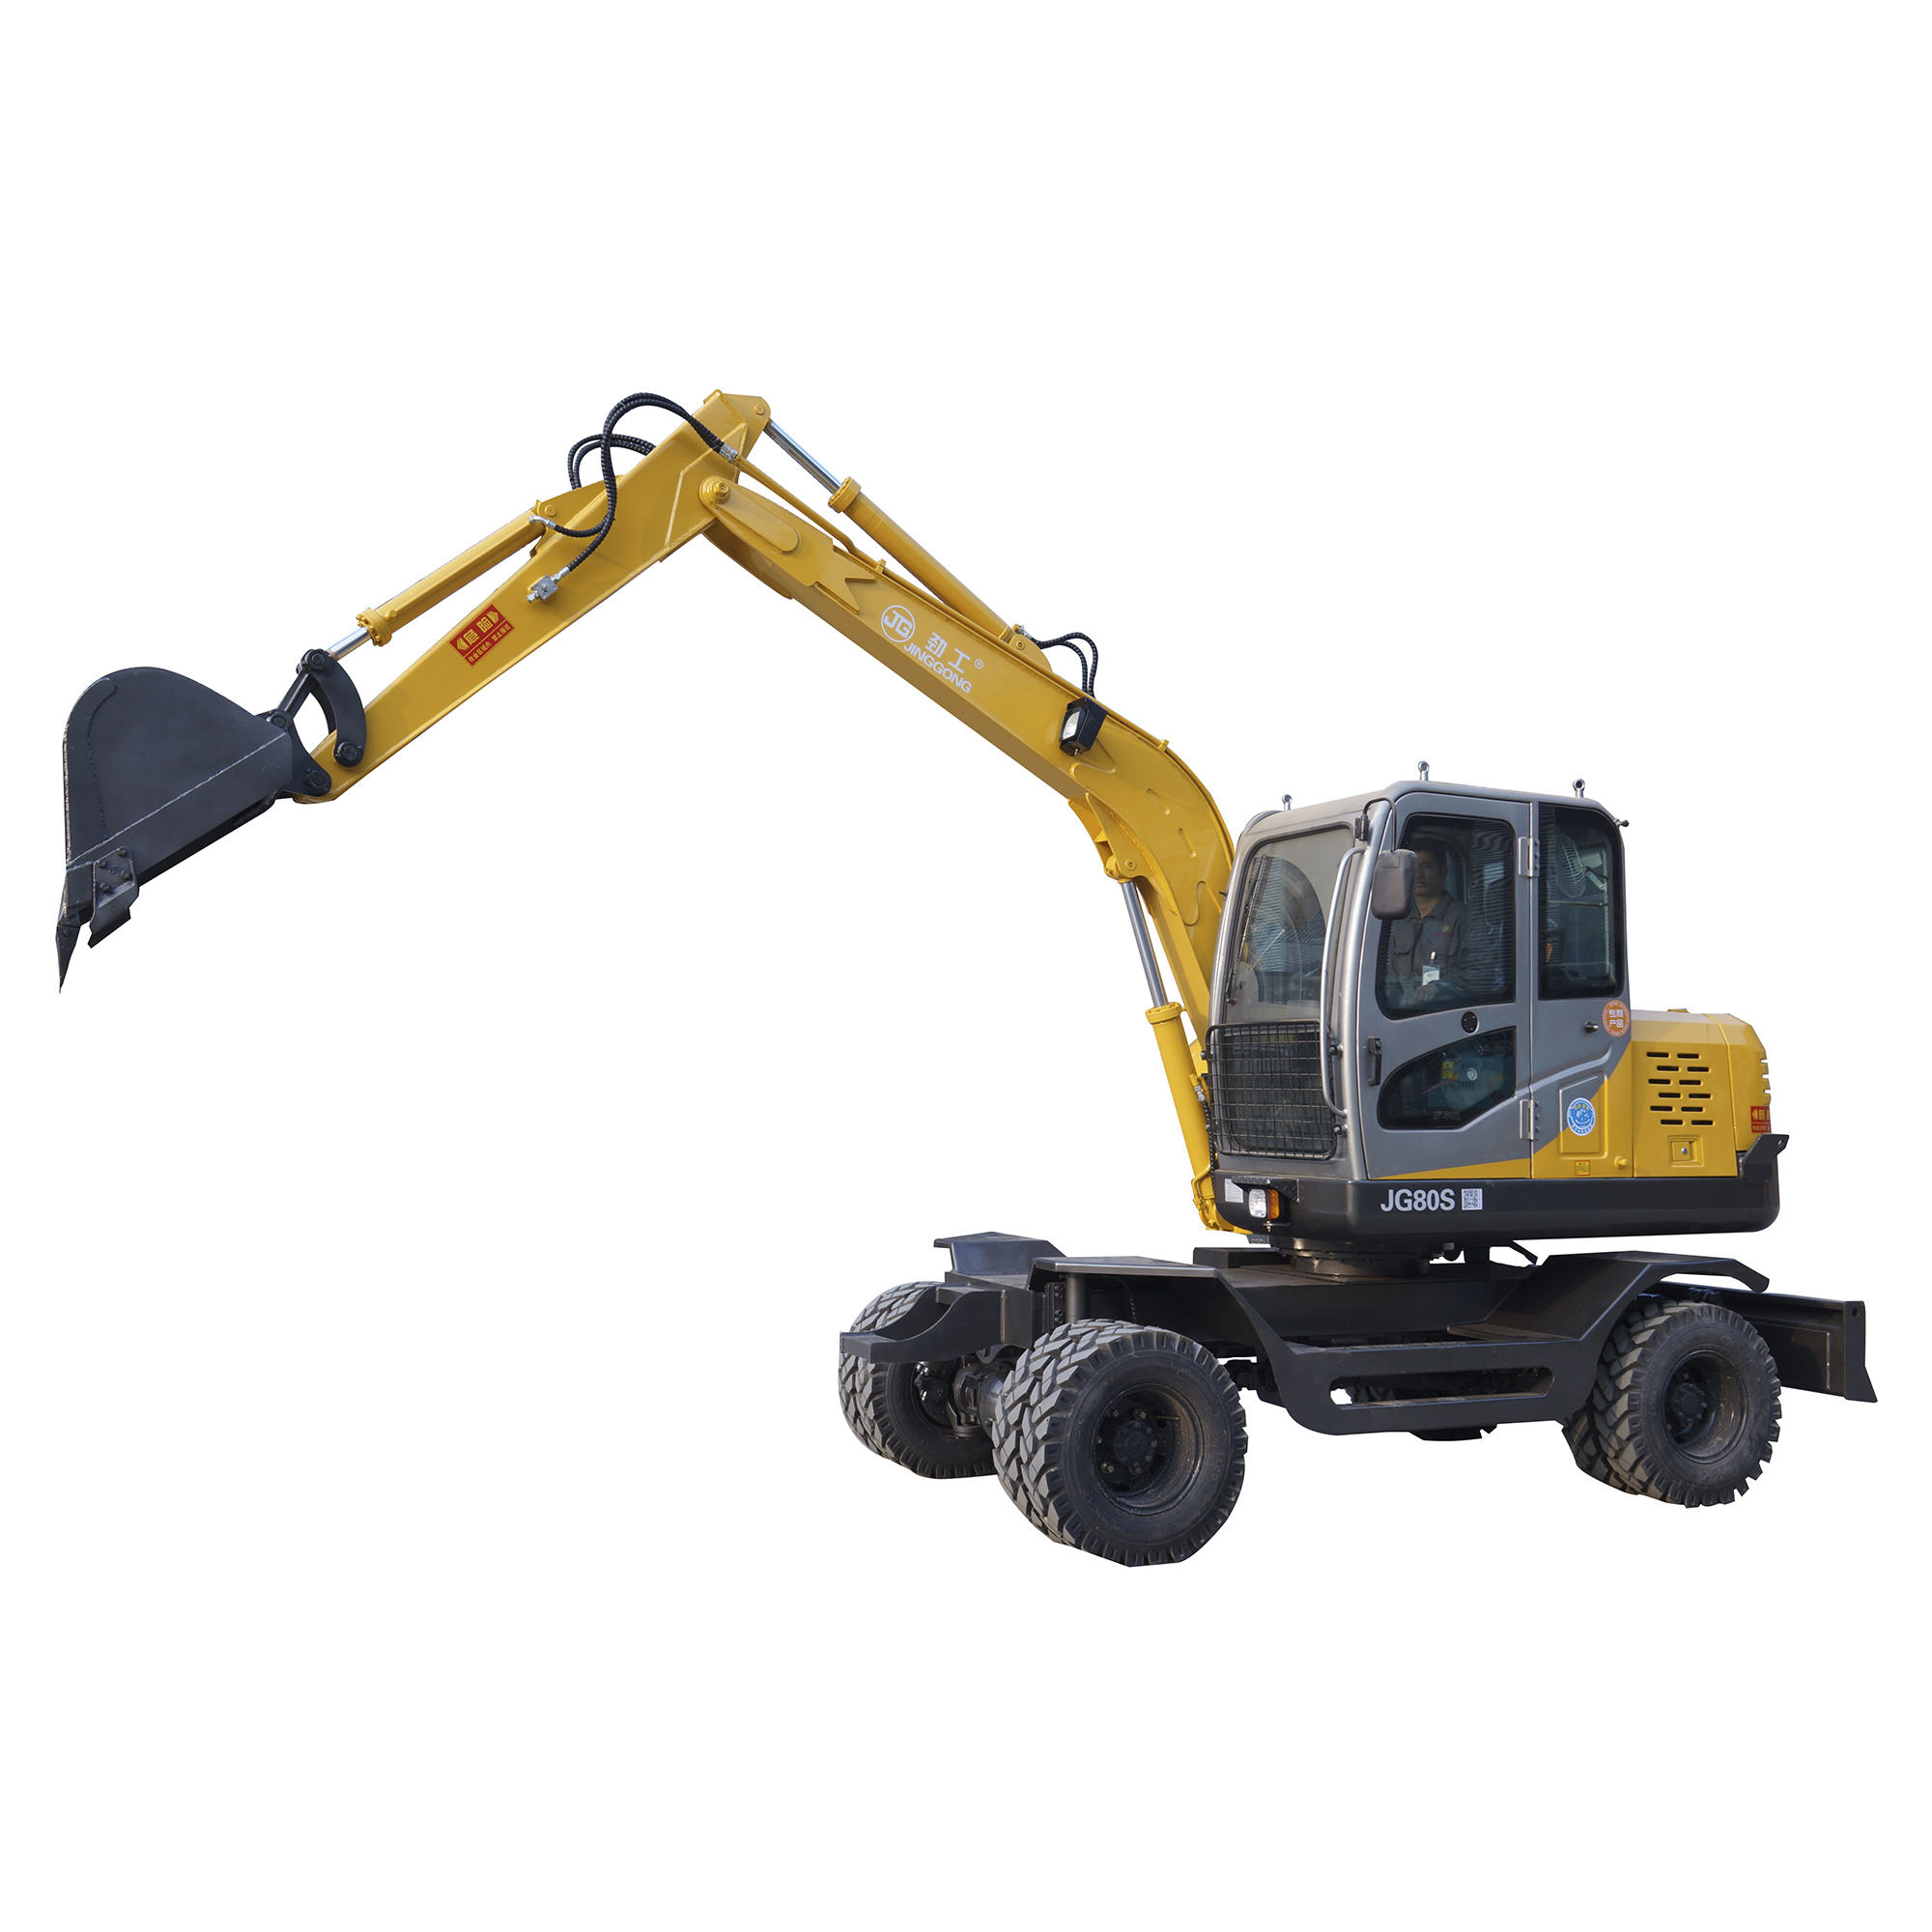 Hot sale 6 tons JG Excavator Mini Wheel Excavators Machine